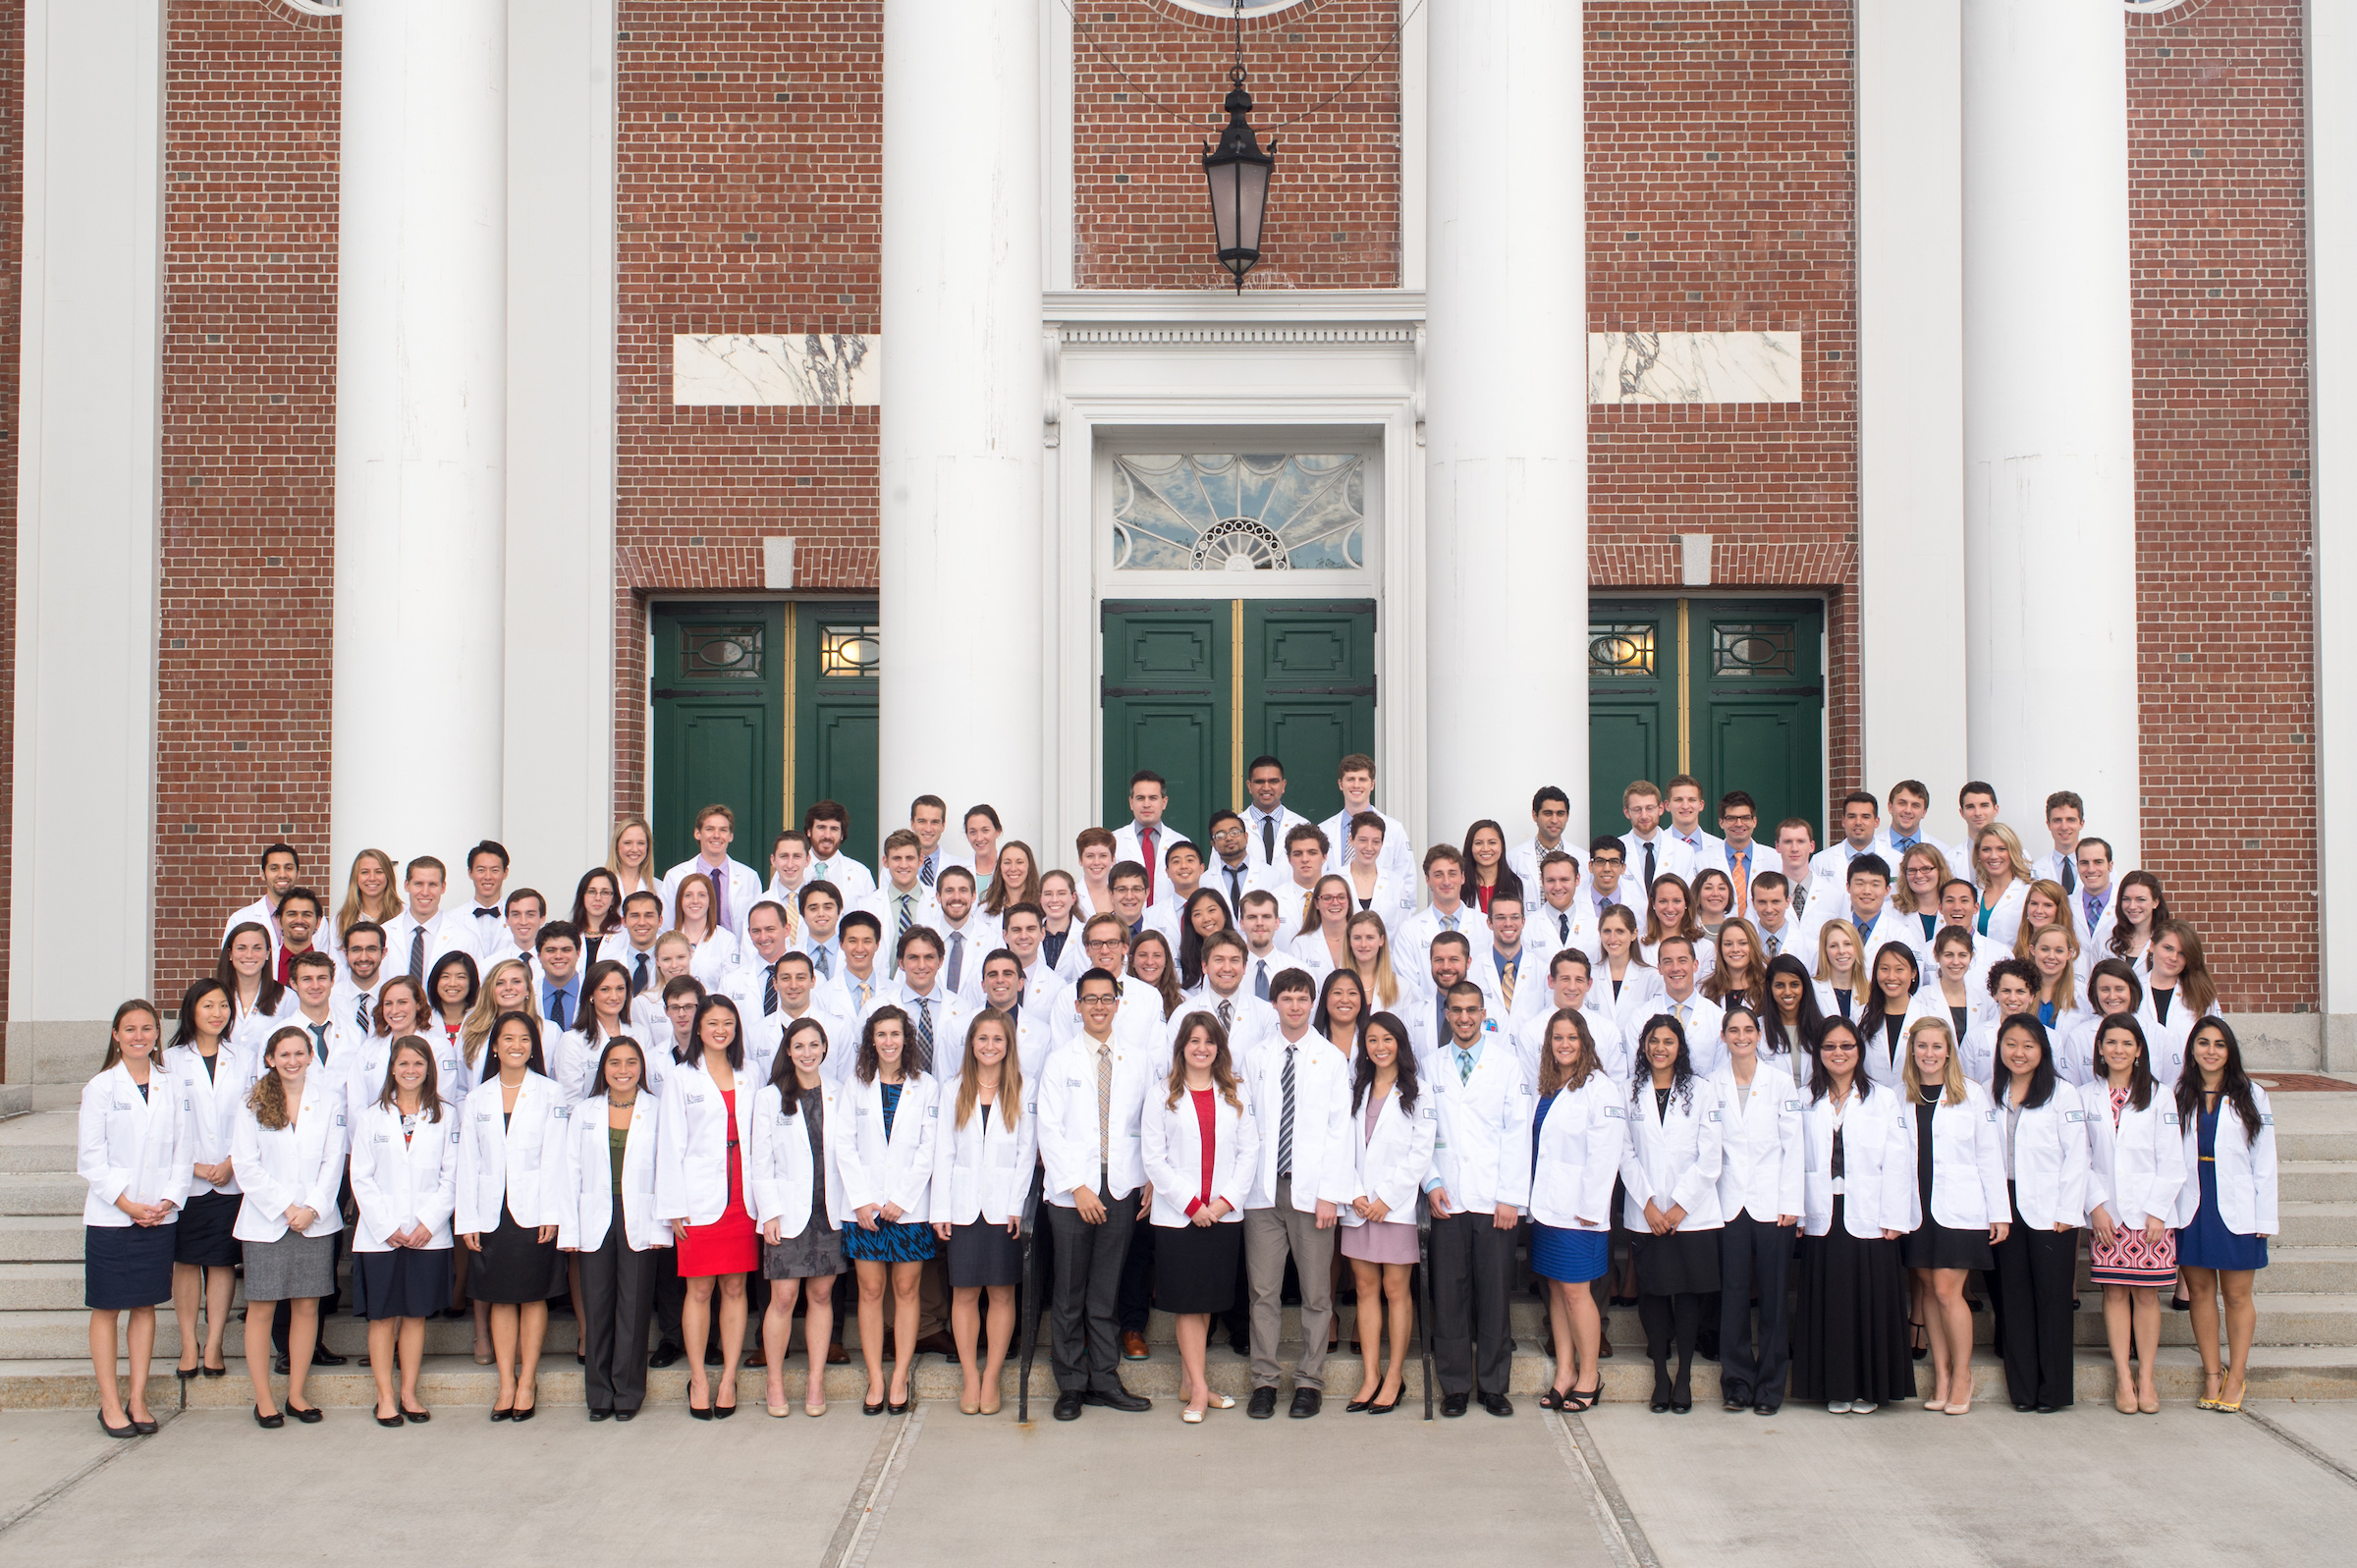 Class of 2017 White Coat photo